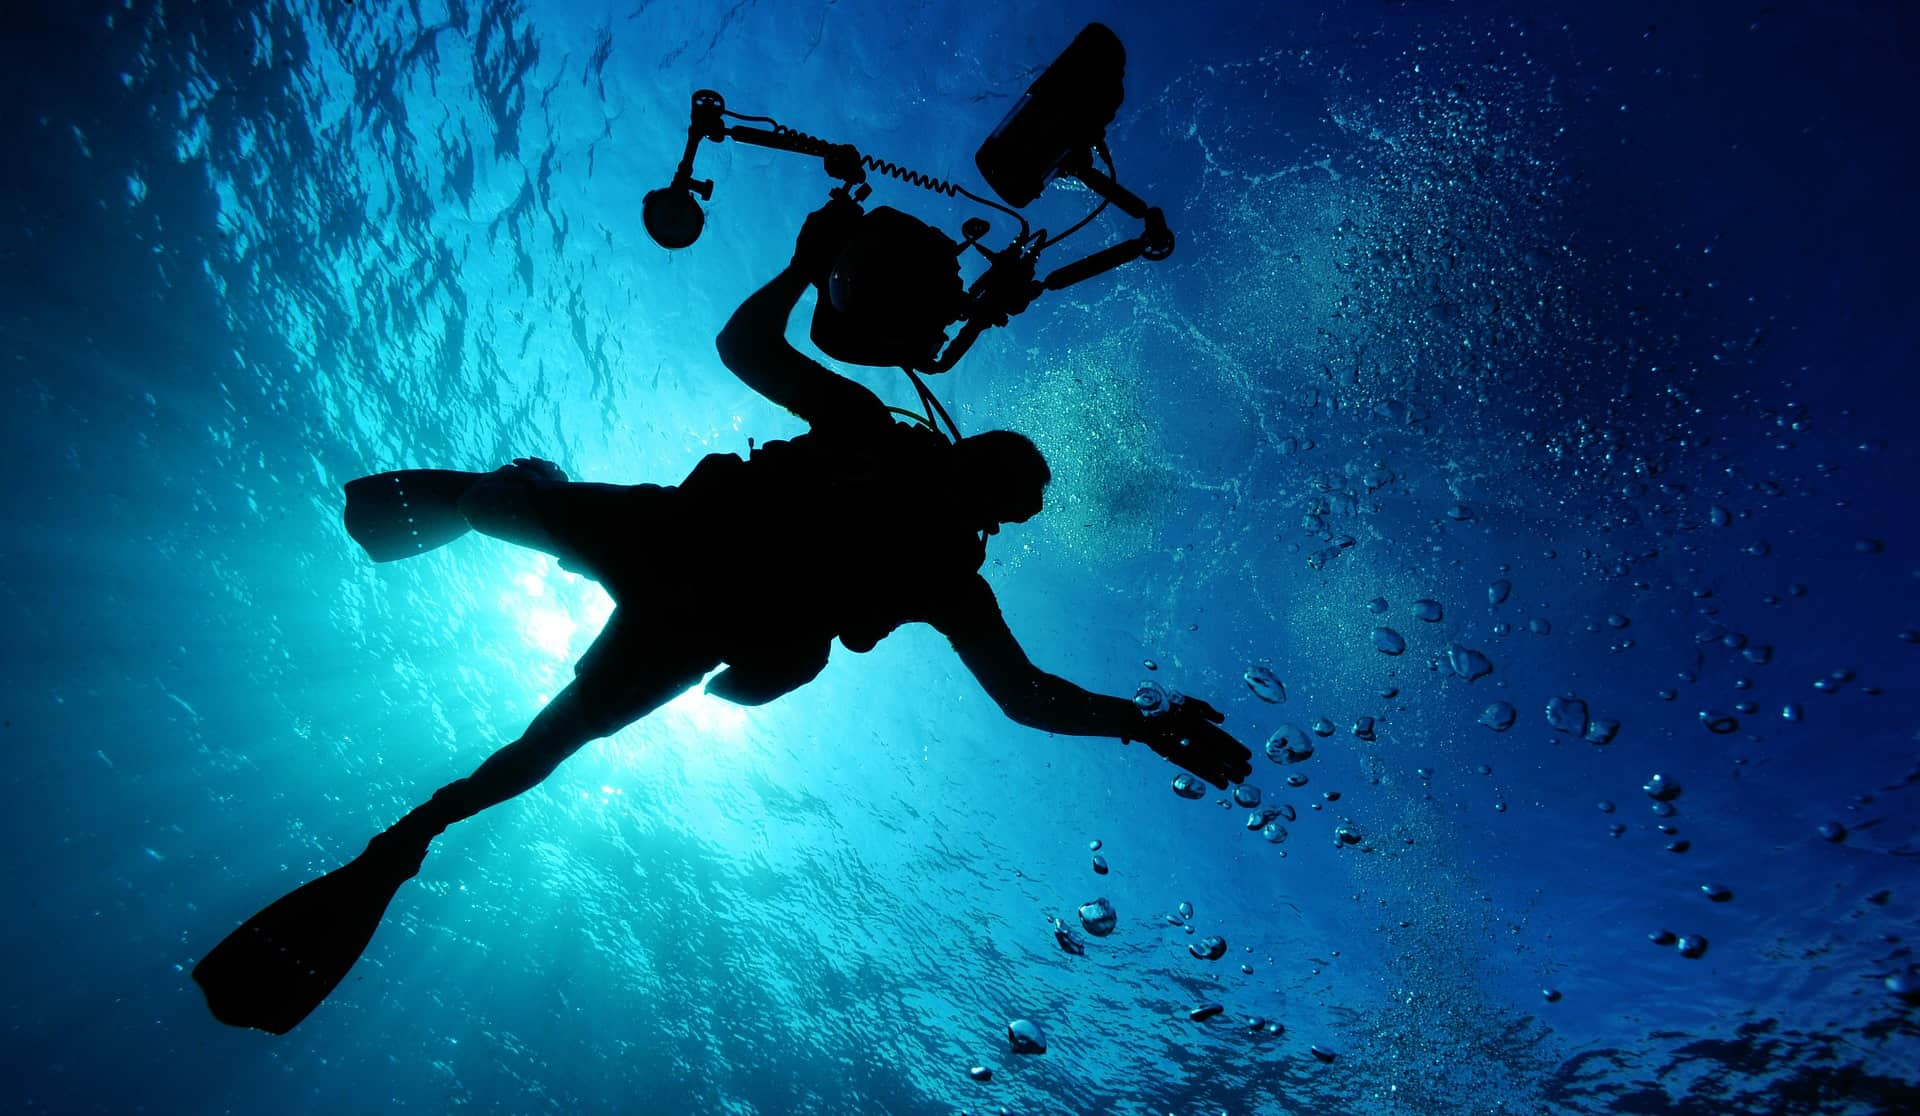 Diver holding a metal detector while swimming underwater